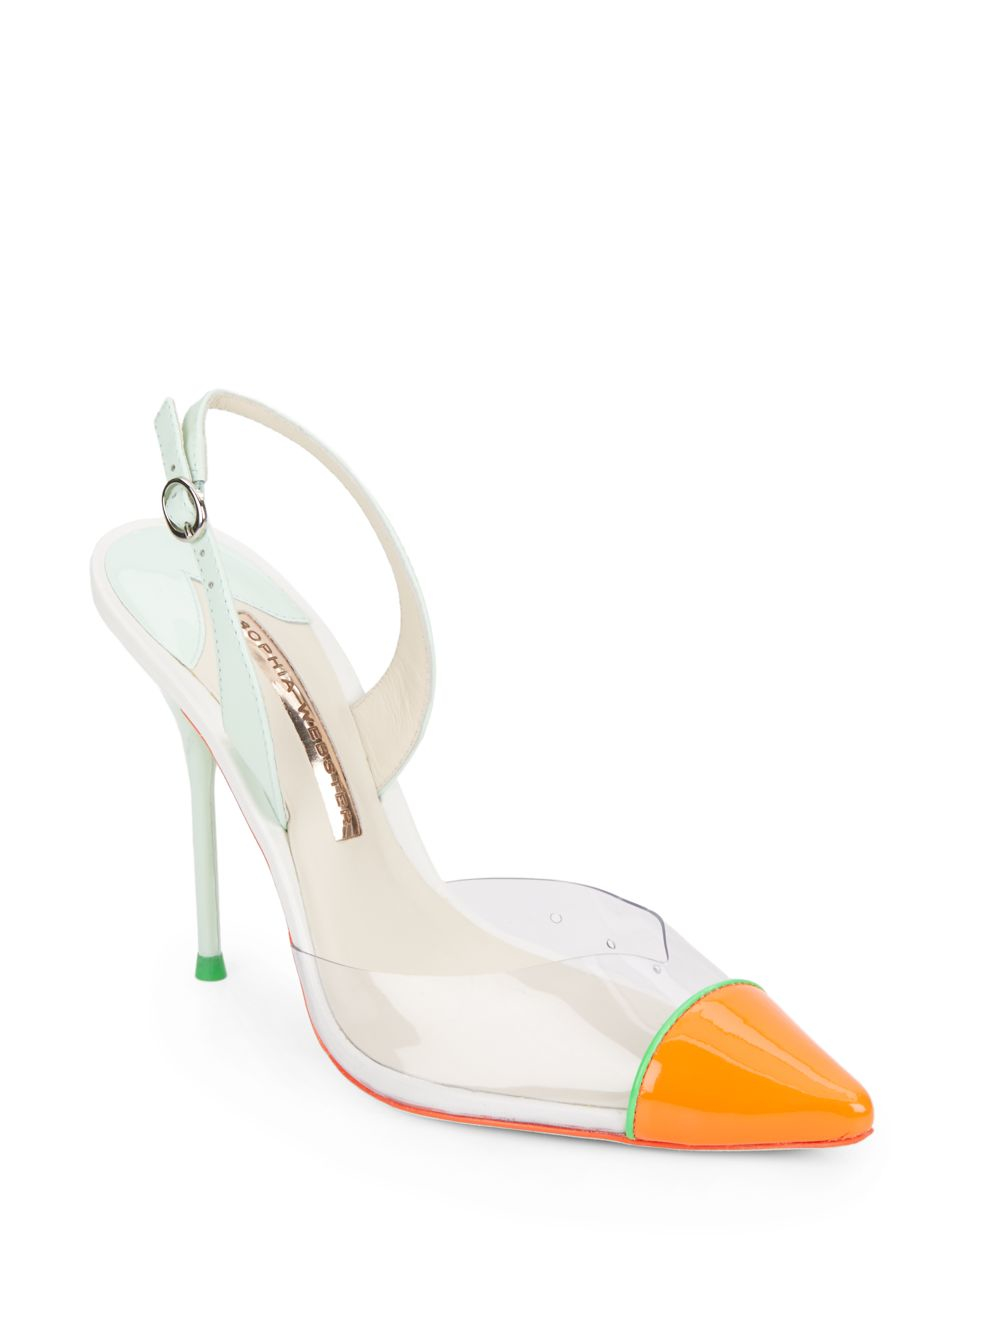 723d71a00285 Lyst - Sophia Webster Daria Patent Leather   Translucent Slingback ...